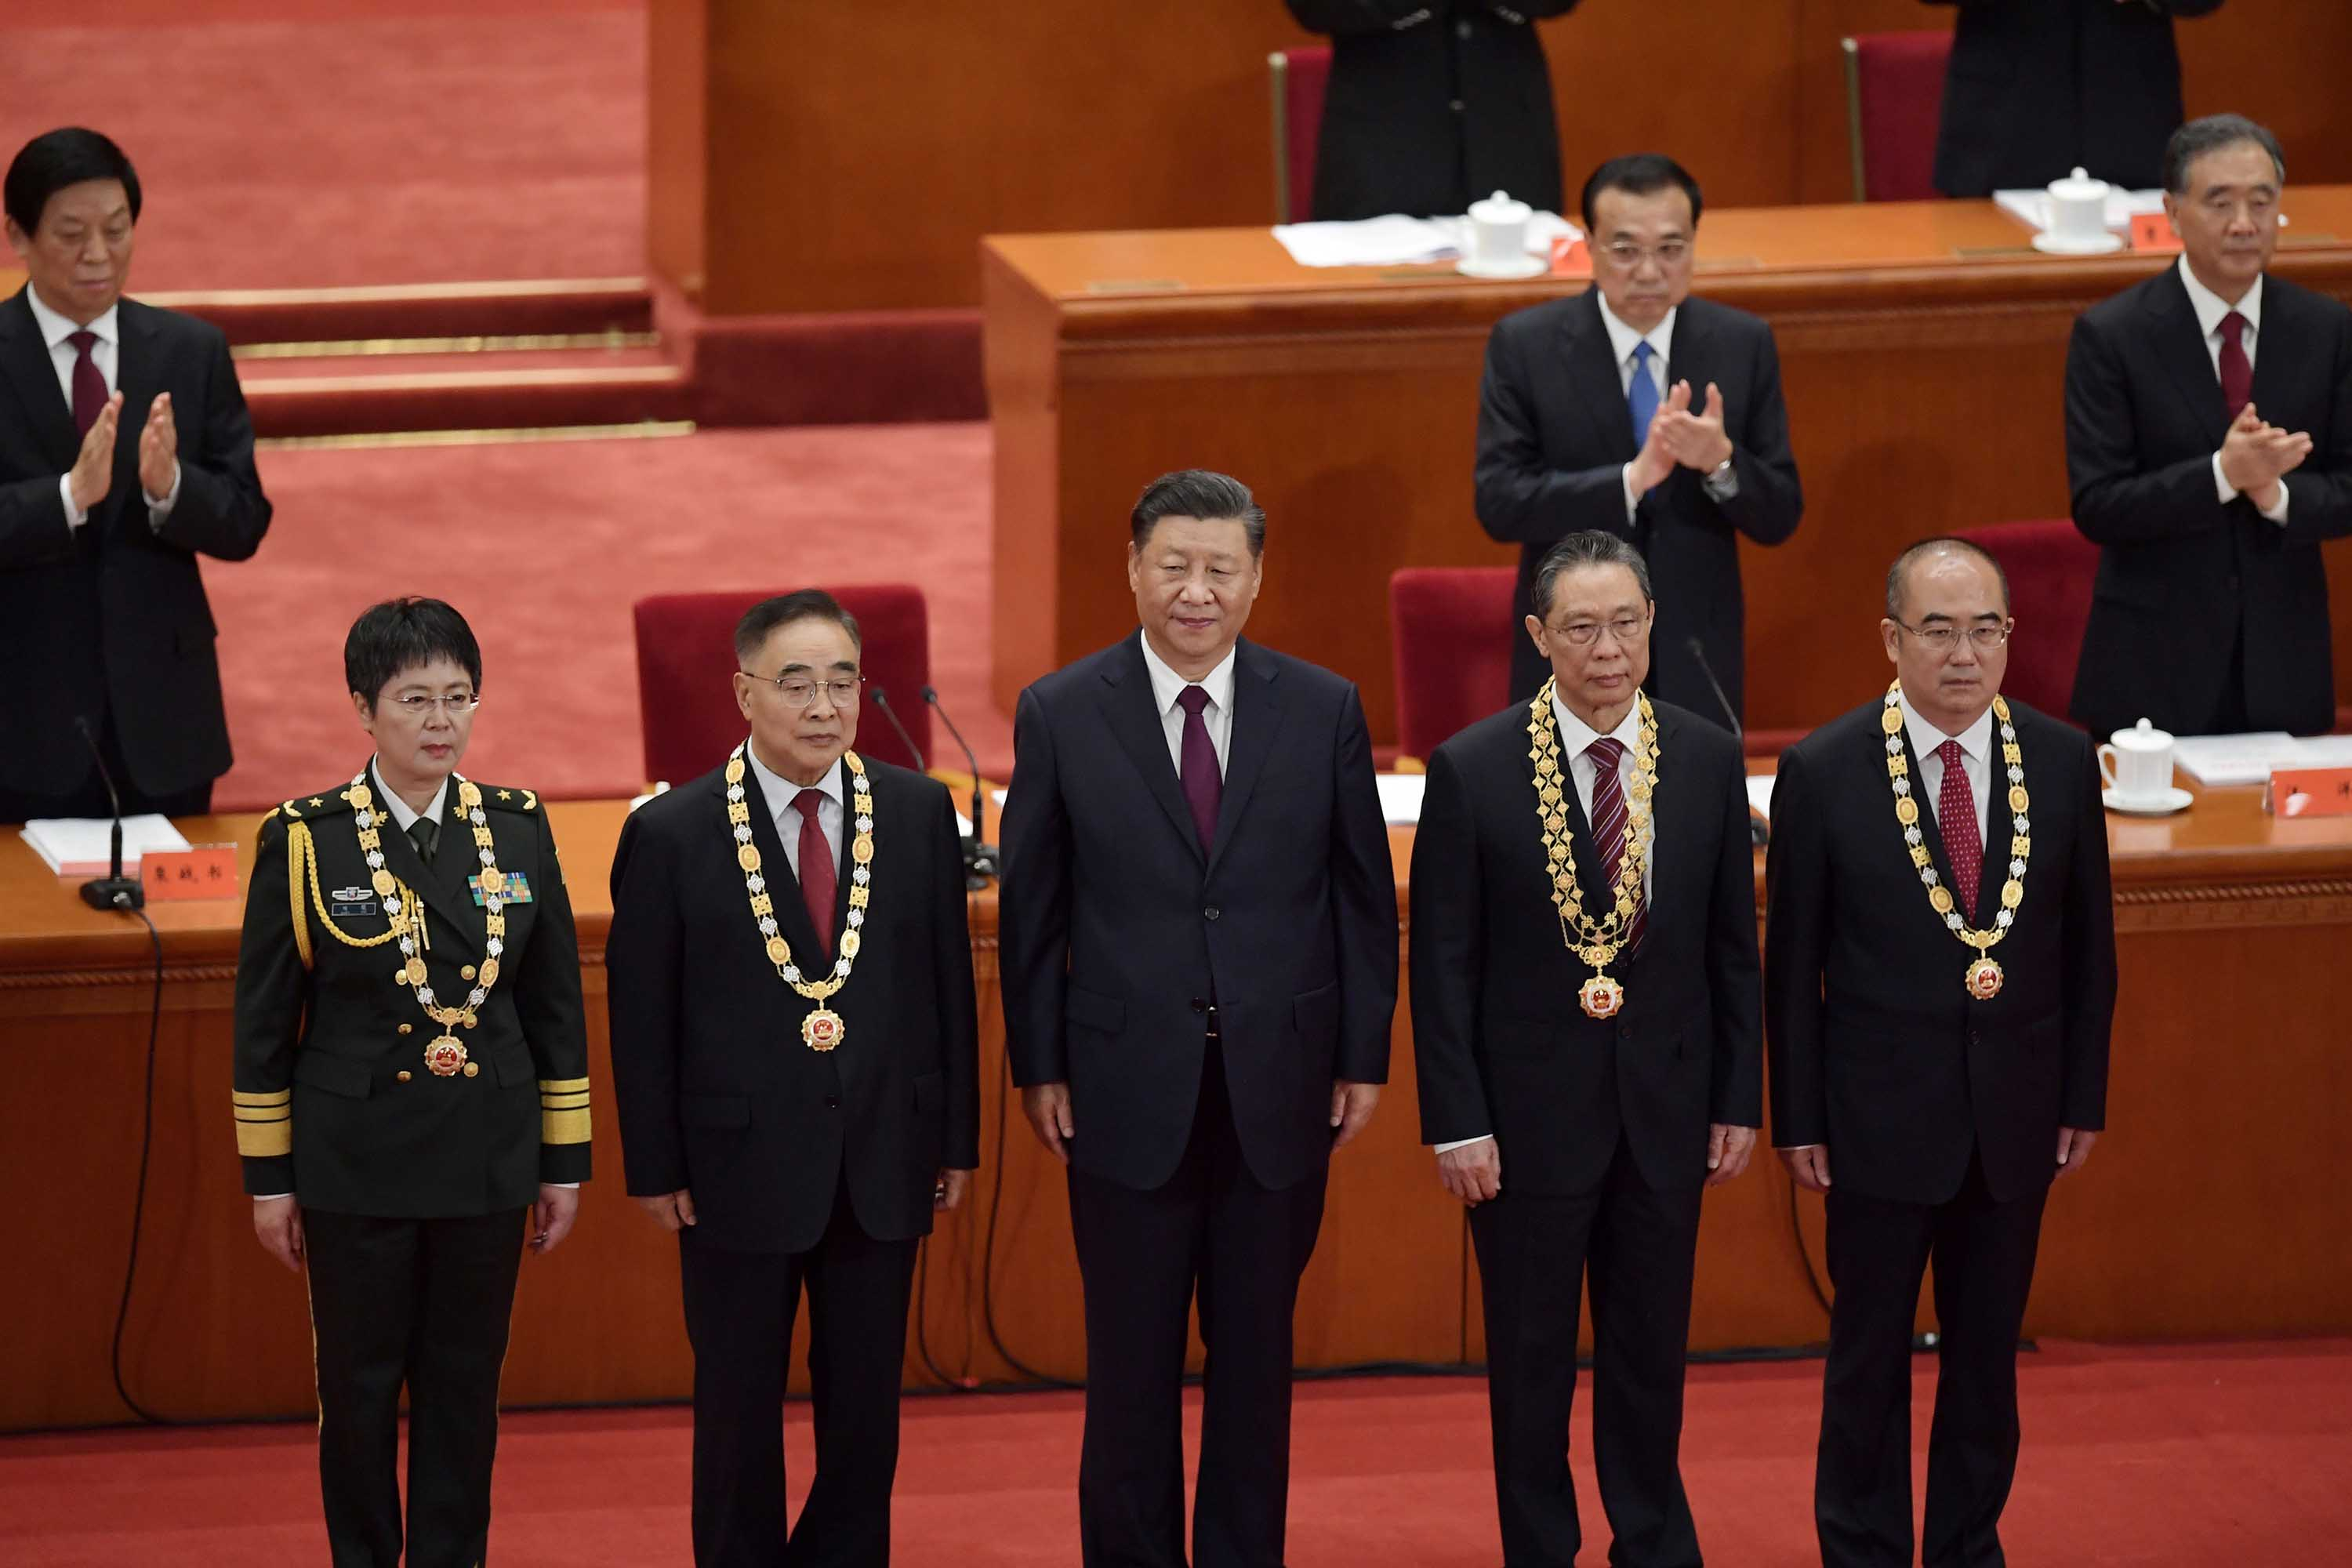 Chinese President Xi Jinping, center, stands with honourees (from left) Chen Wei, Zhang Boli, Zhong Nanshan, and Zhang Dingyu, as they receive awards during a ceremony to honor people who fought against the pandemic, in Beijing, on September 8.